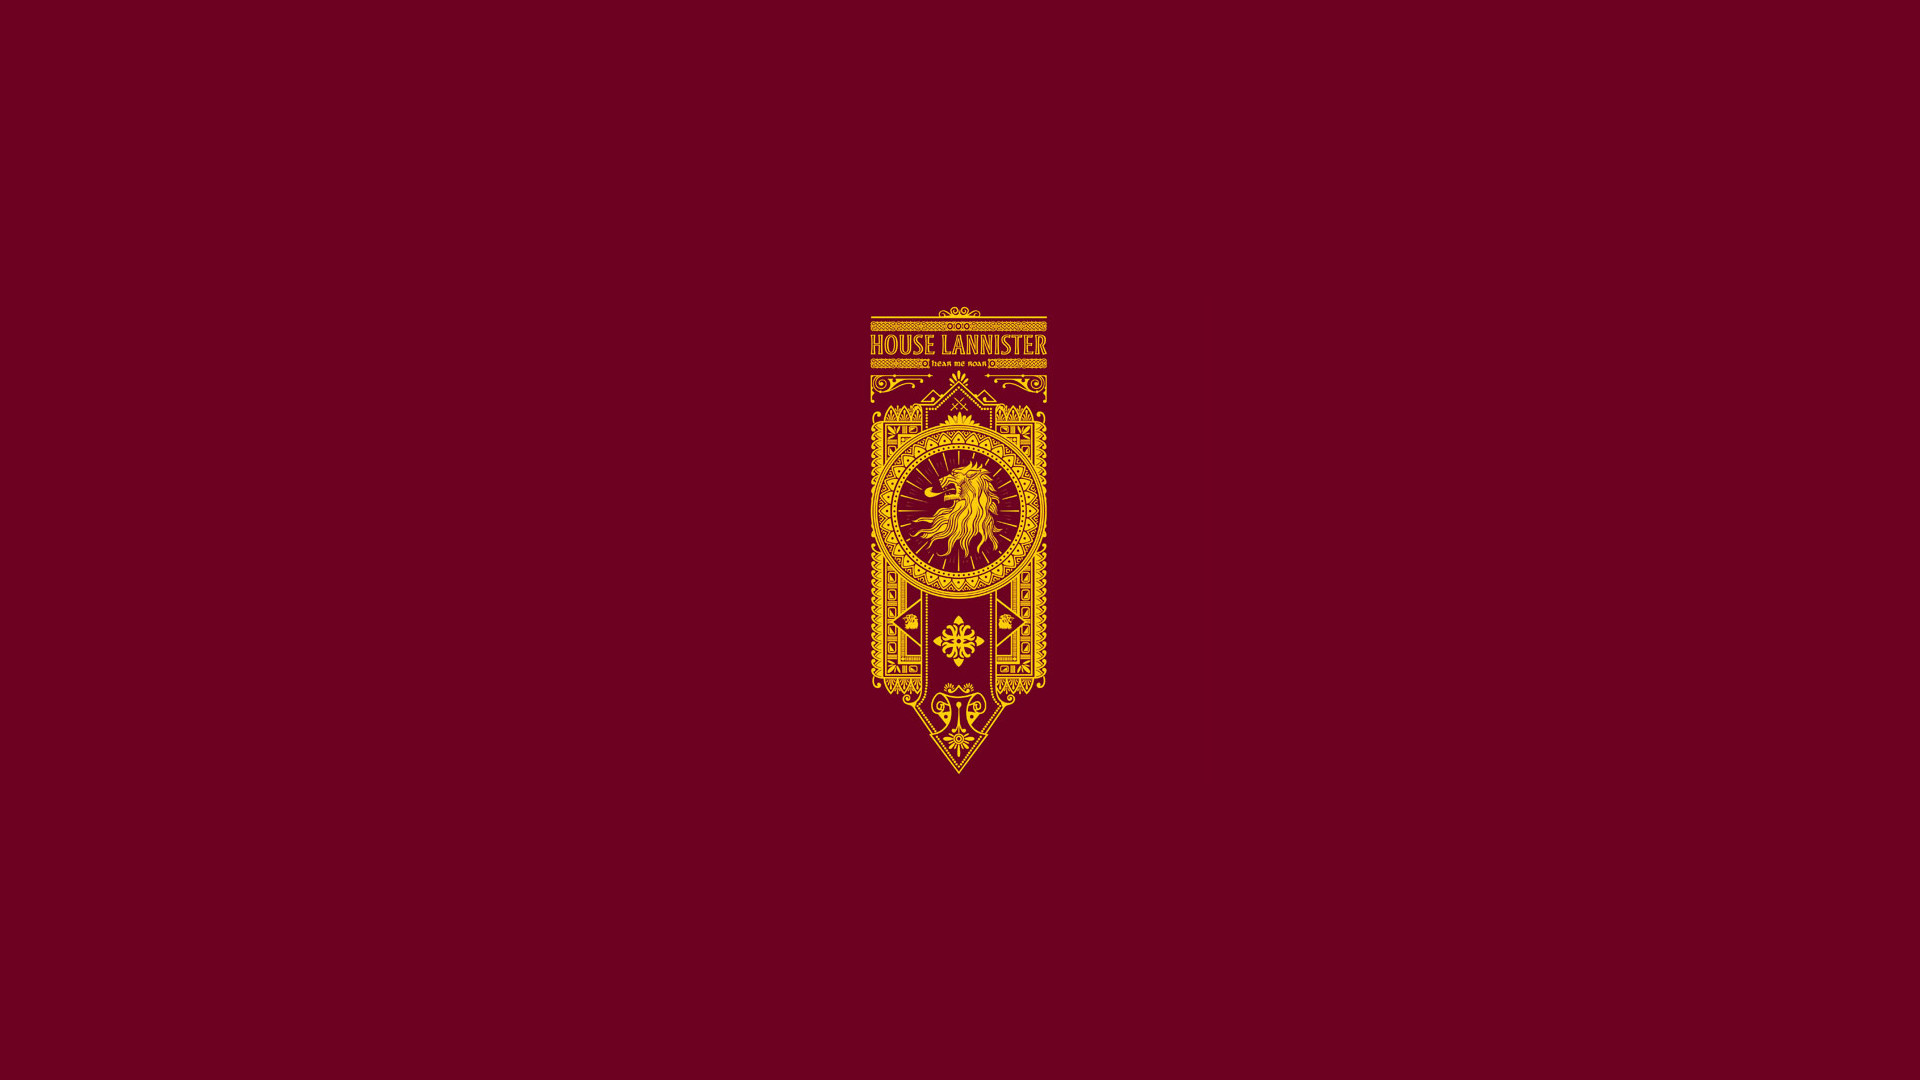 [No Spoilers] Some cool minimalist GoT wallpapers, courtesy of /r/minimalism!  : gameofthrones